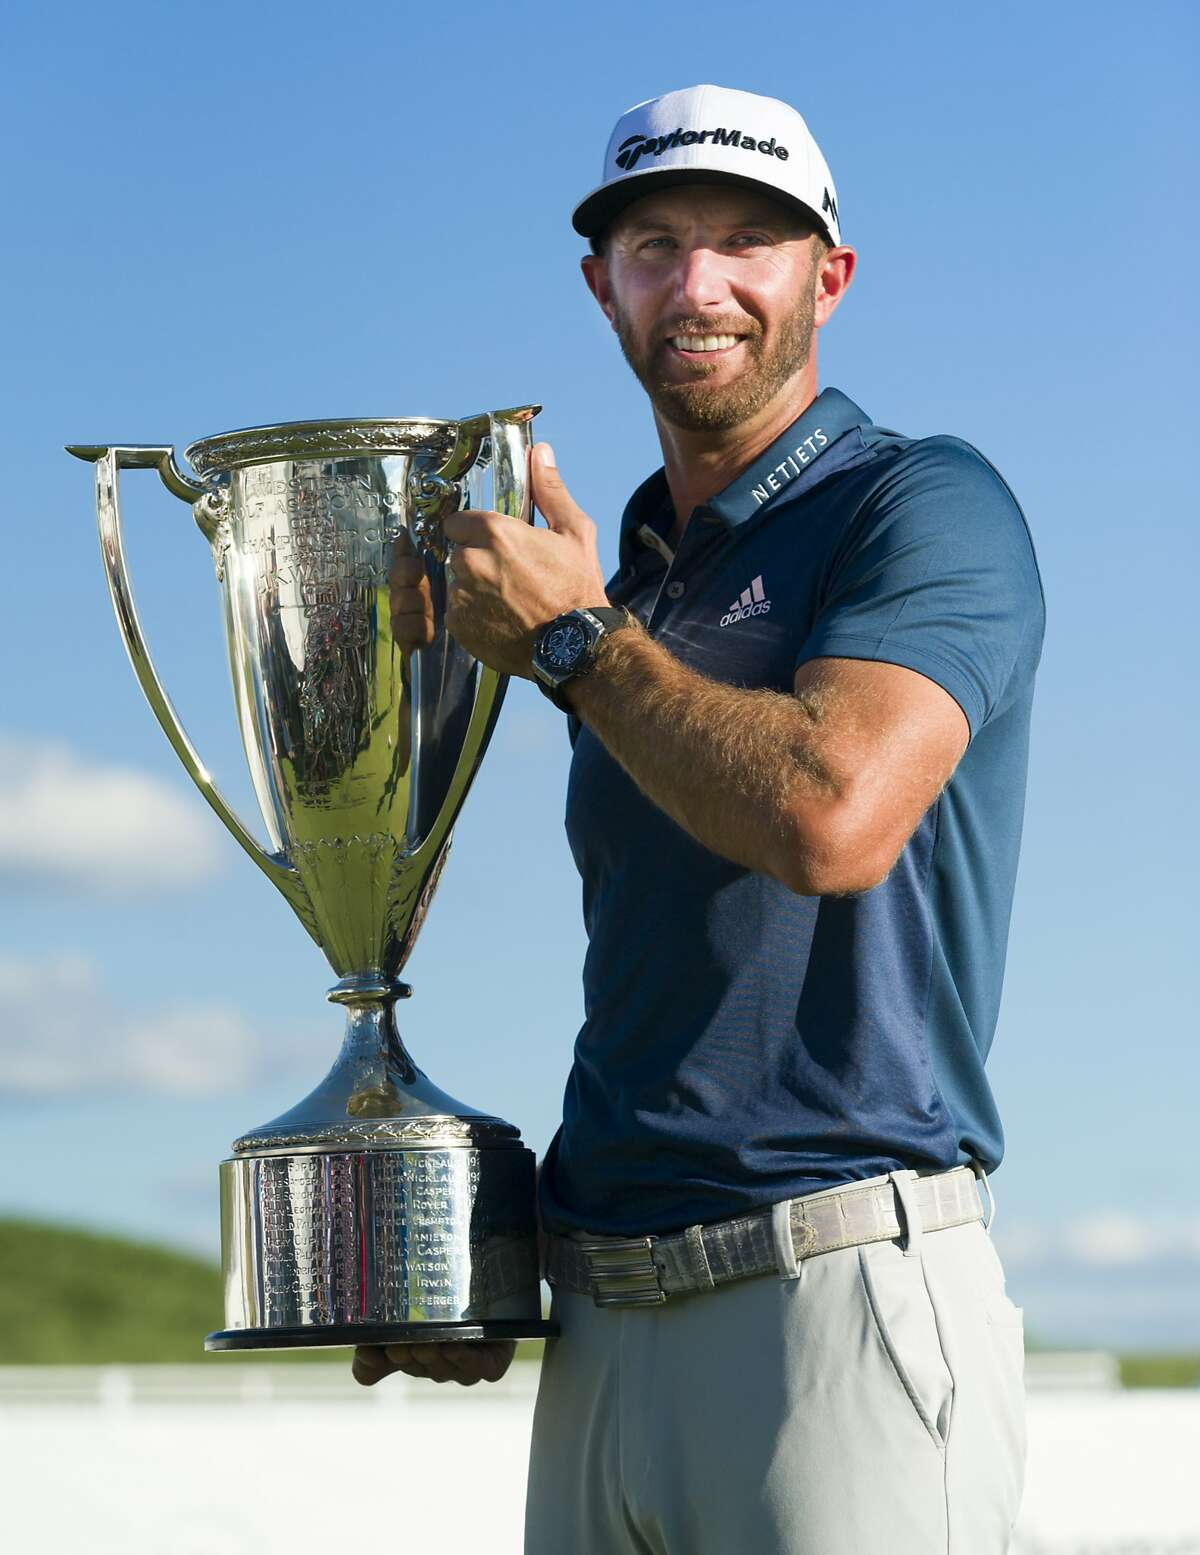 Dustin Johnson poses with his trophy after winning the BMW Championship golf tournament at Crooked Stick Golf Club in Carmel, Ind., Sunday, Sept. 11, 2016. (AP Photo/Doug McSchooler)